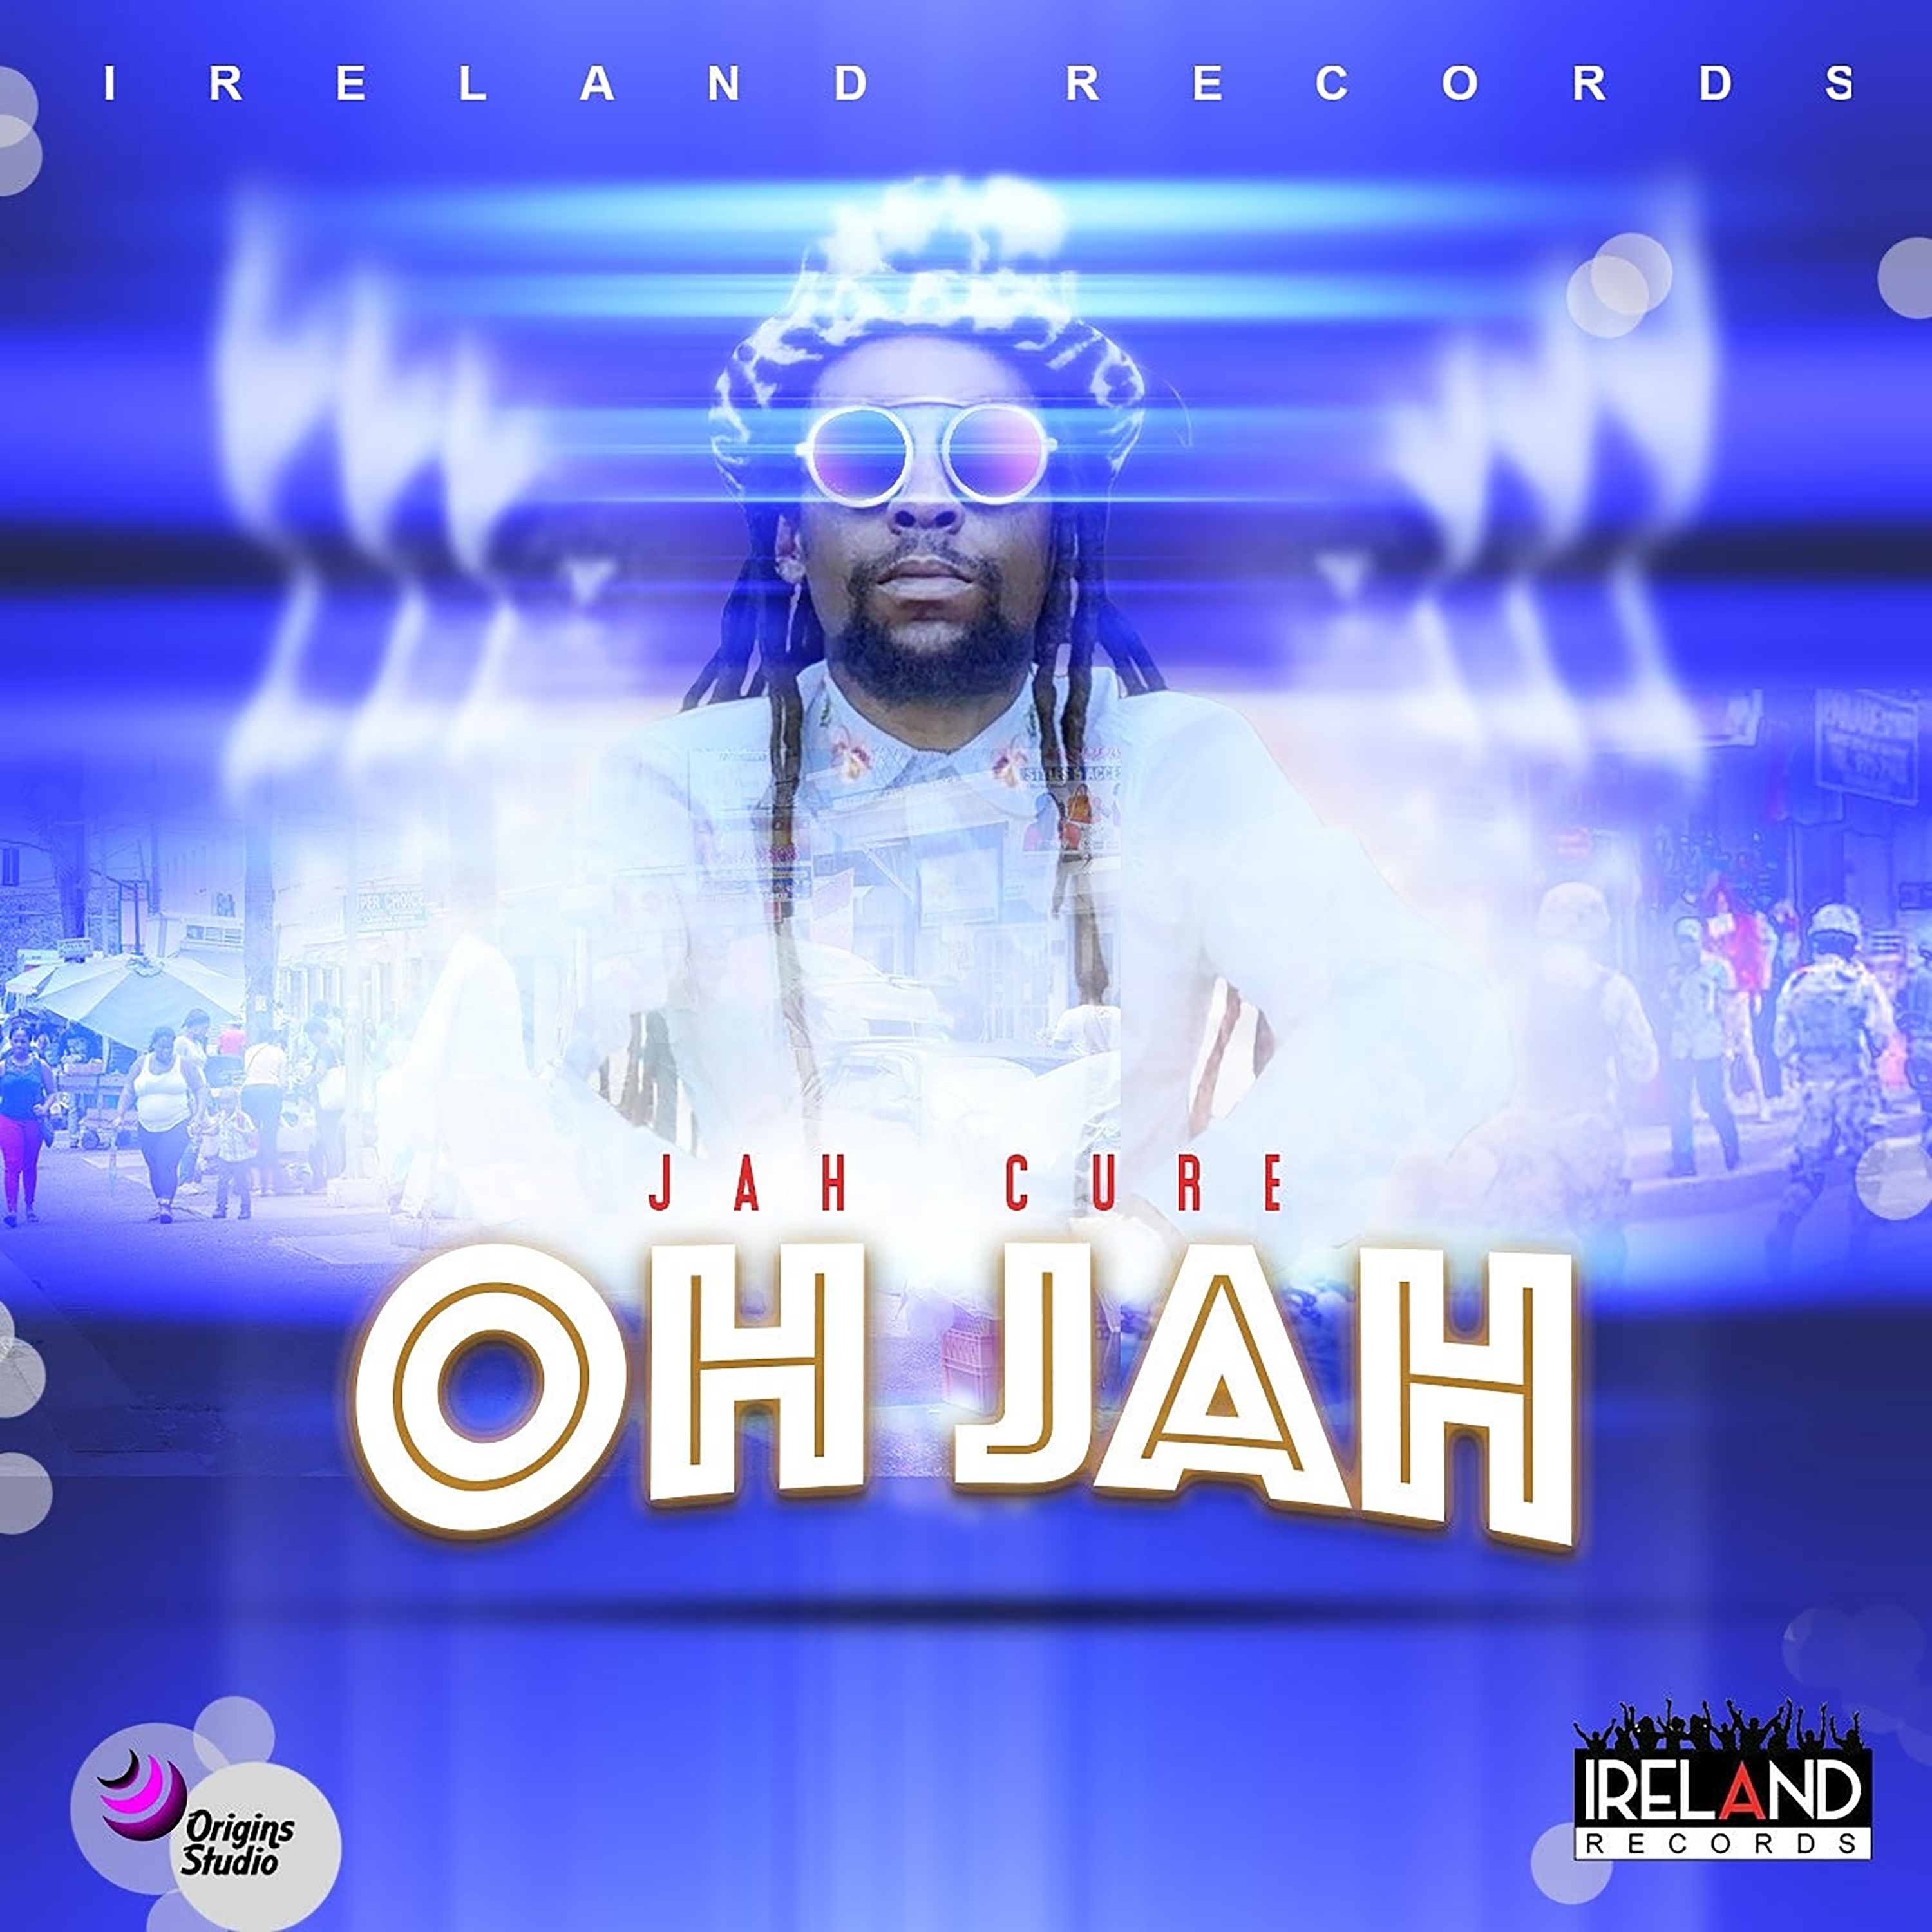 Jah Cure - Oh Jah (Stand Up) - Artwork